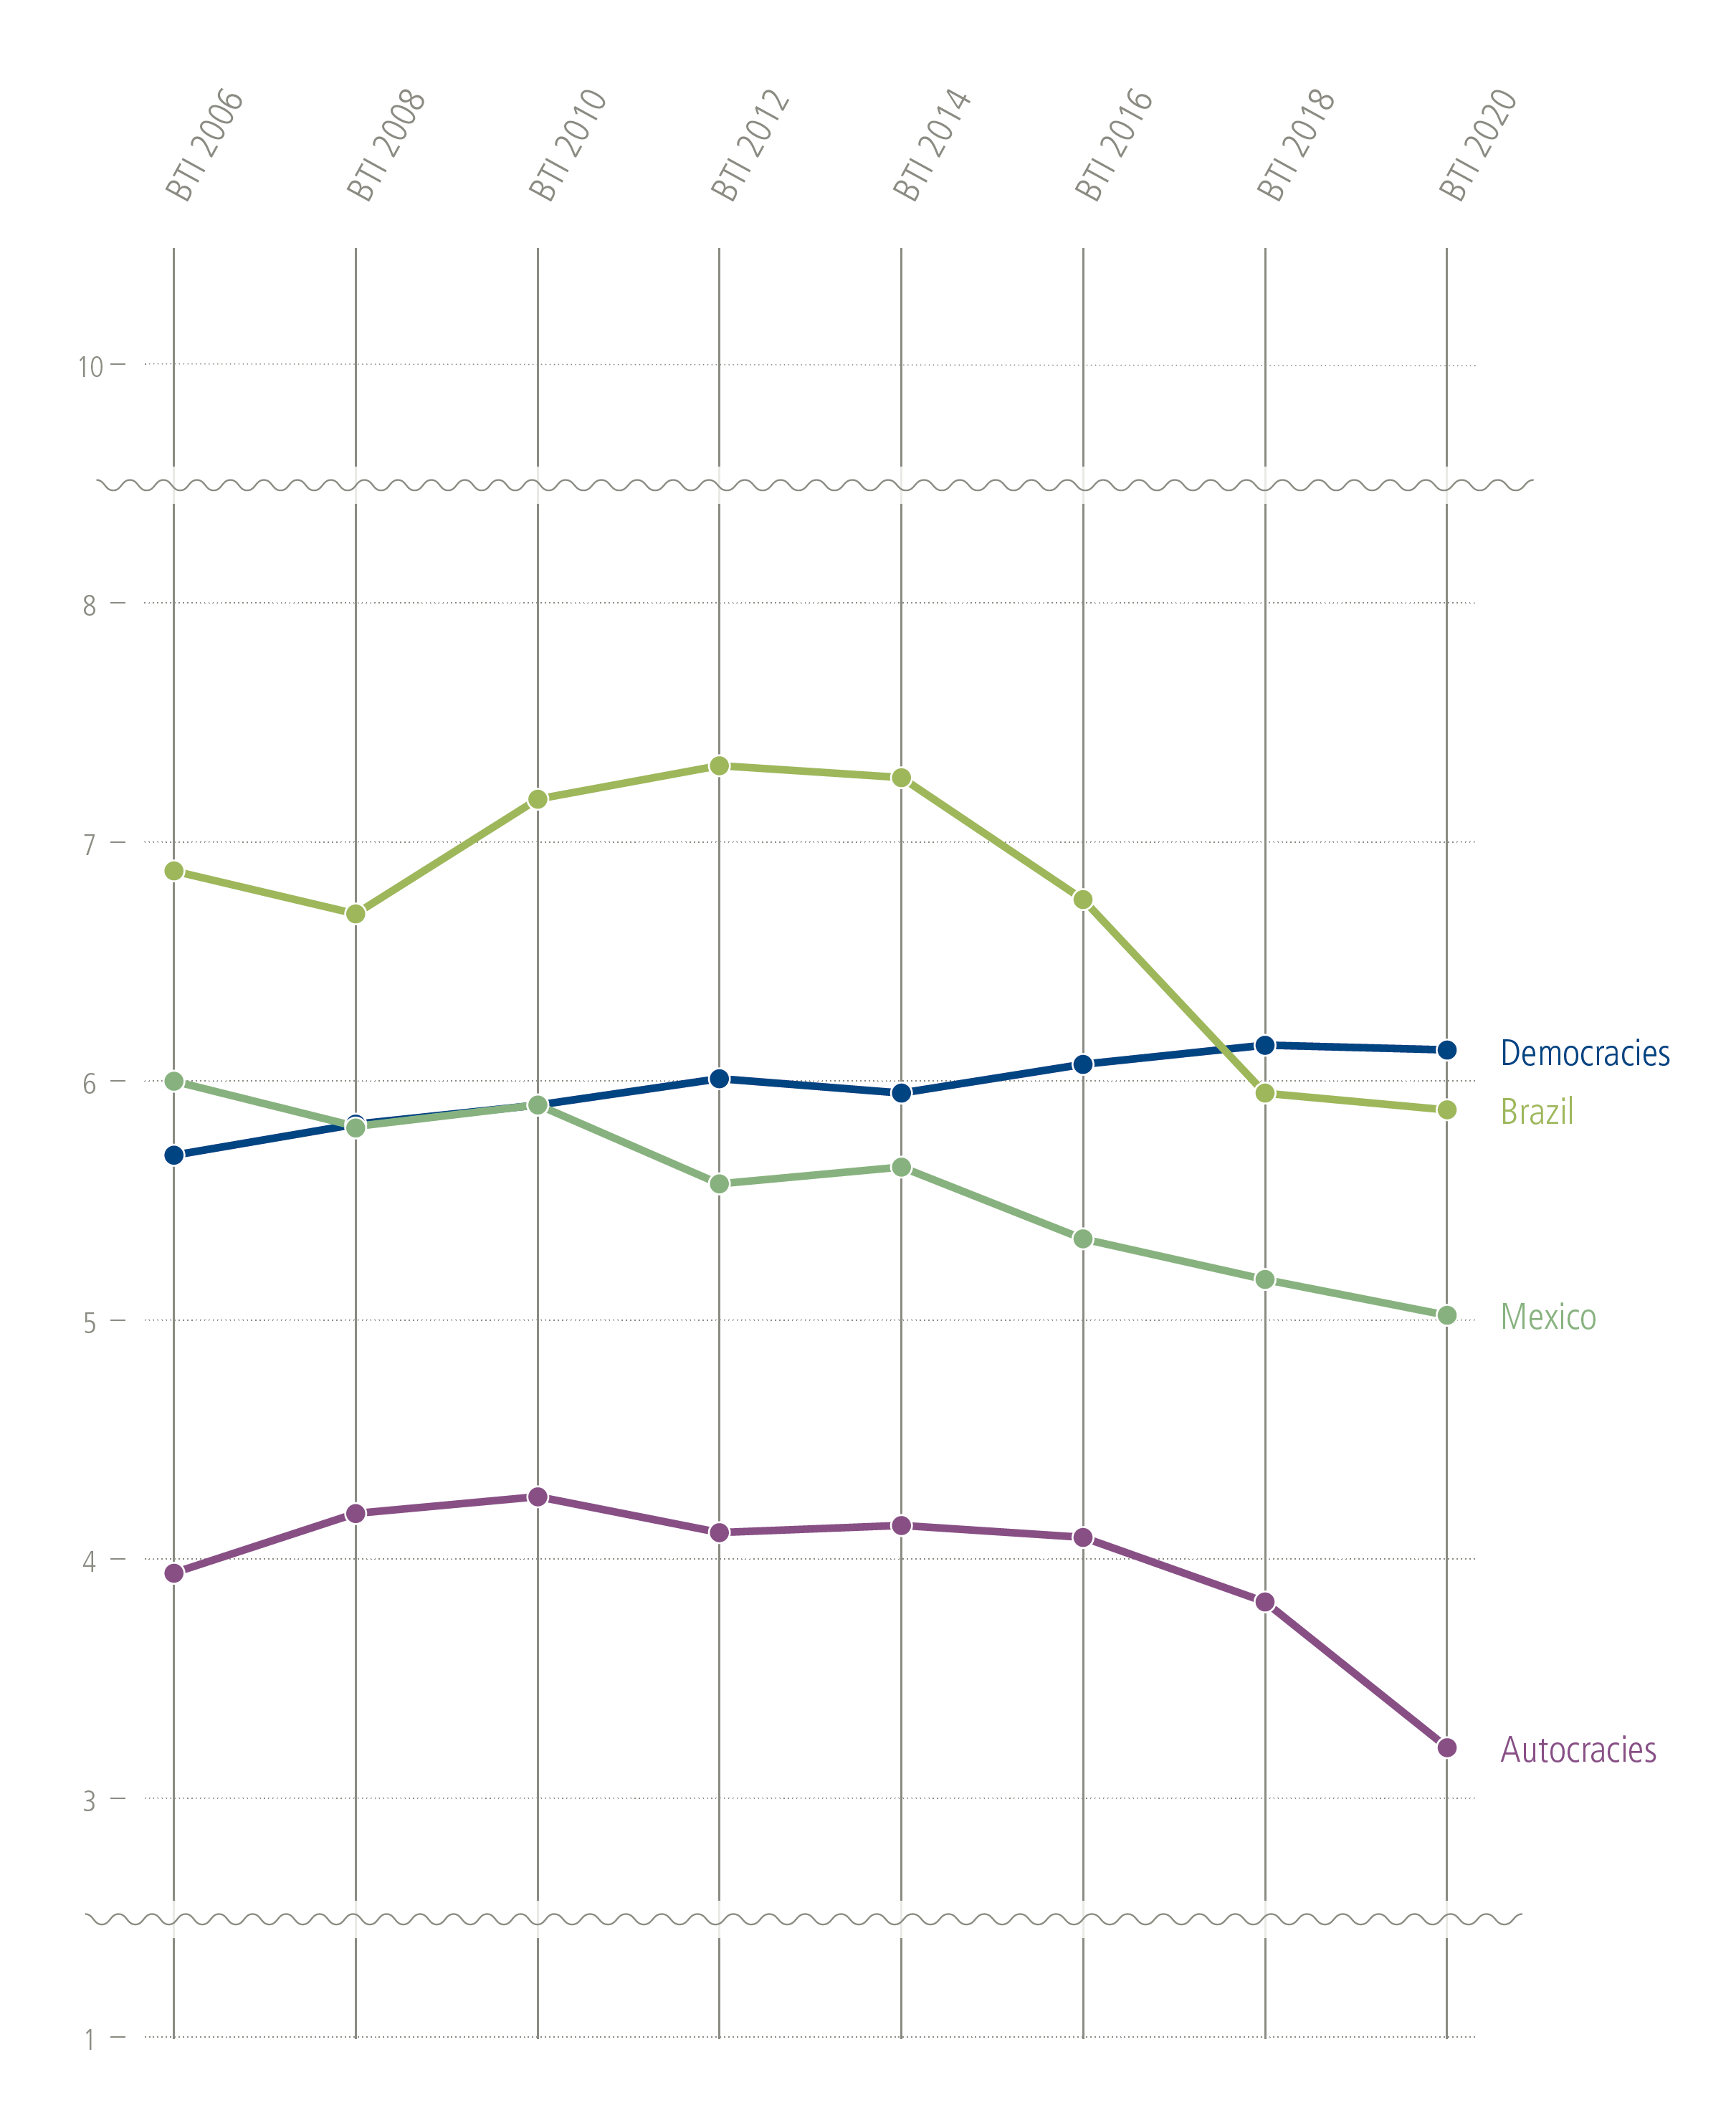 Stable baseline in all democracies – except Brazil and Mexico